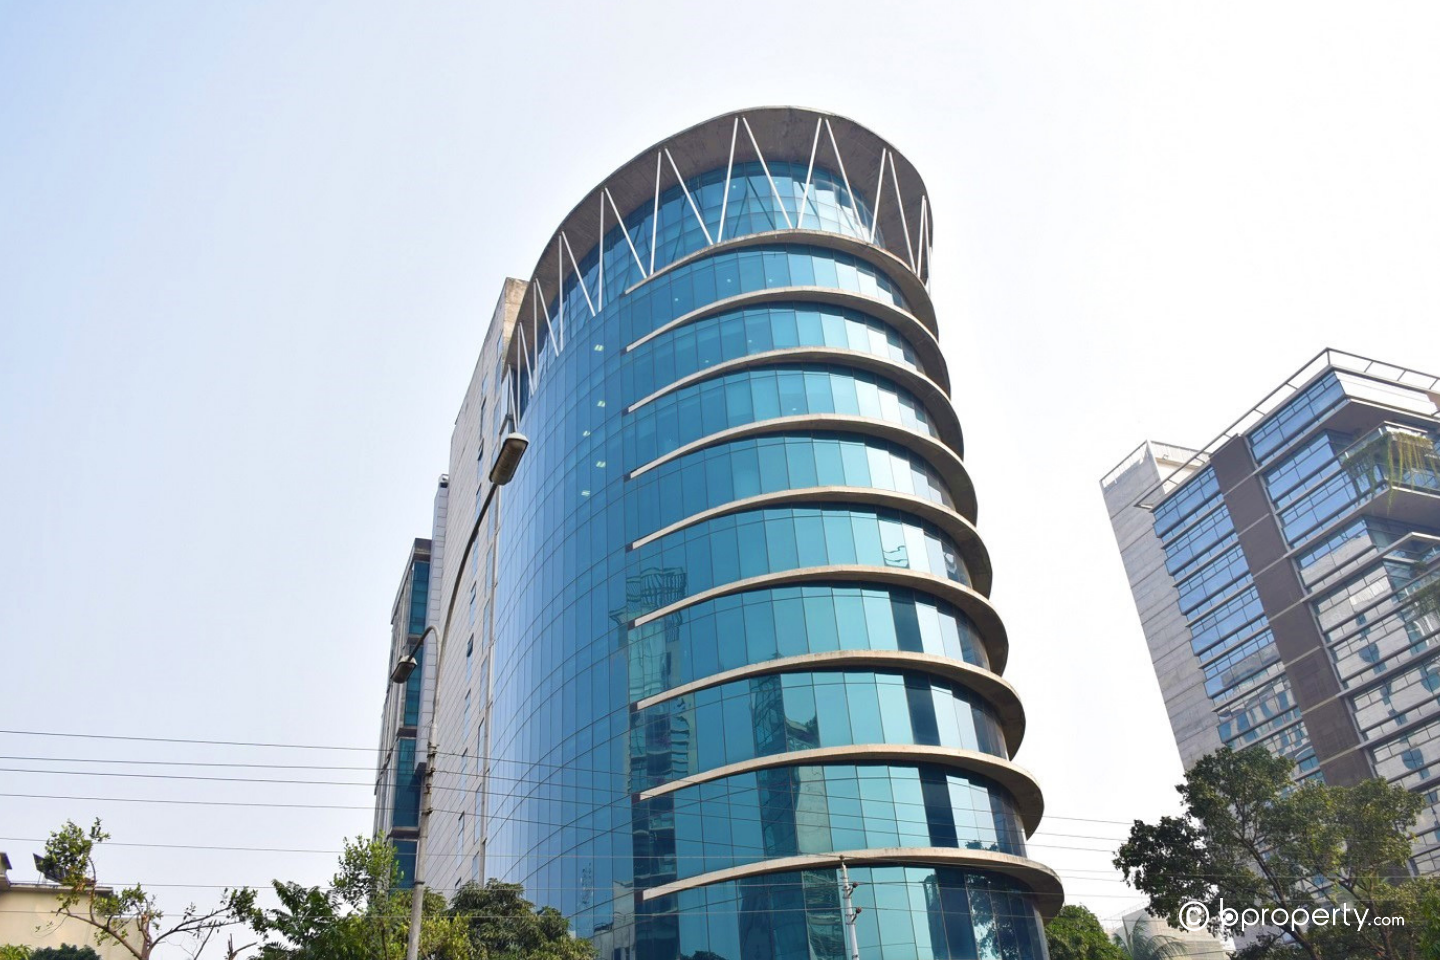 Dont miss the chance to own such a gorgeous commercial real estate in Gulshan 2